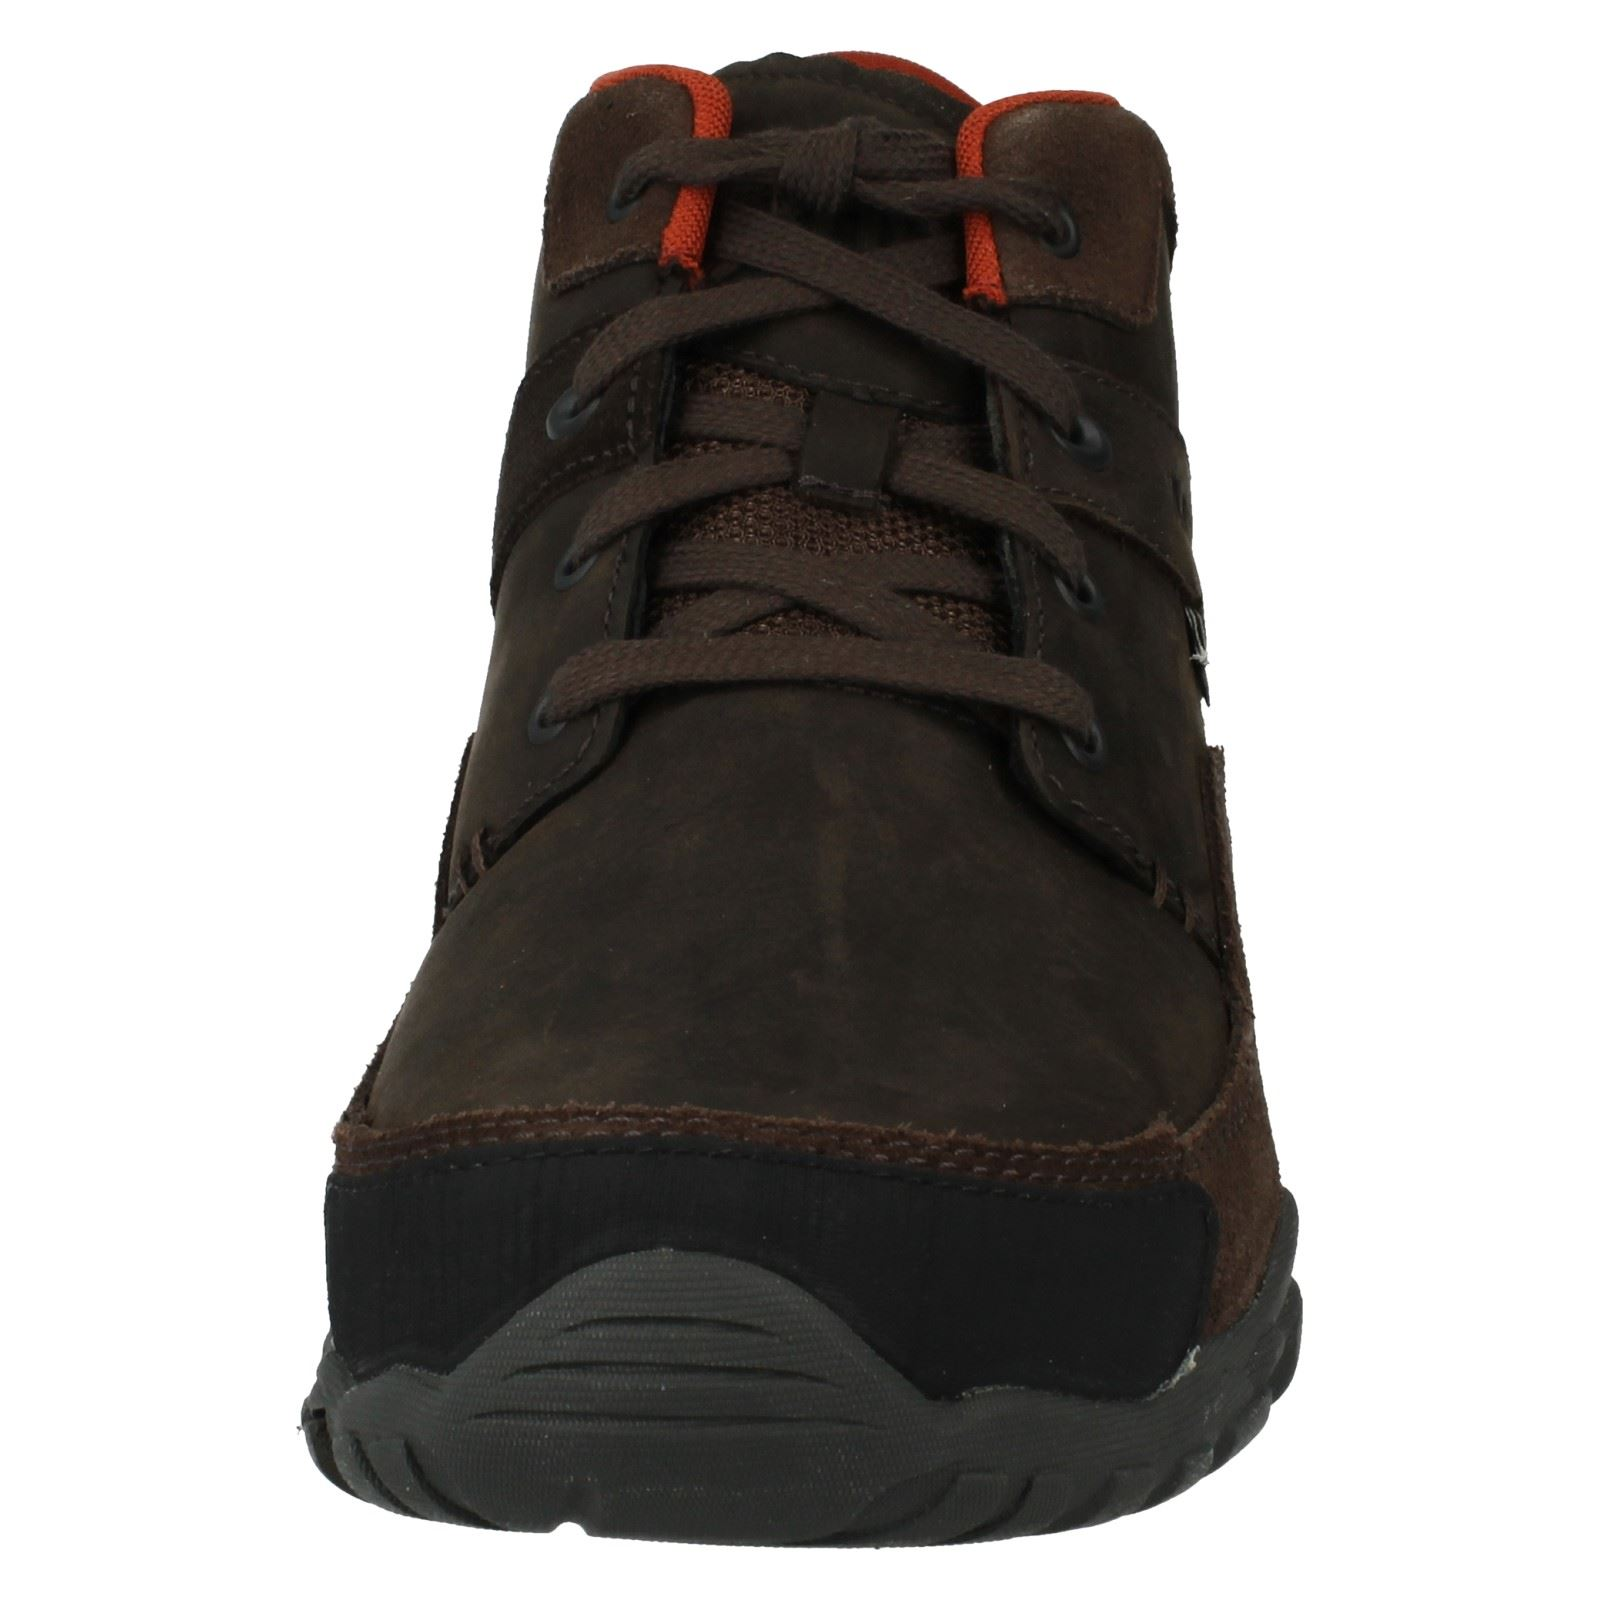 Mid' K Espresso Merrell 'telluride Mens ~ Lace Boots Ankle Up From P5qpz